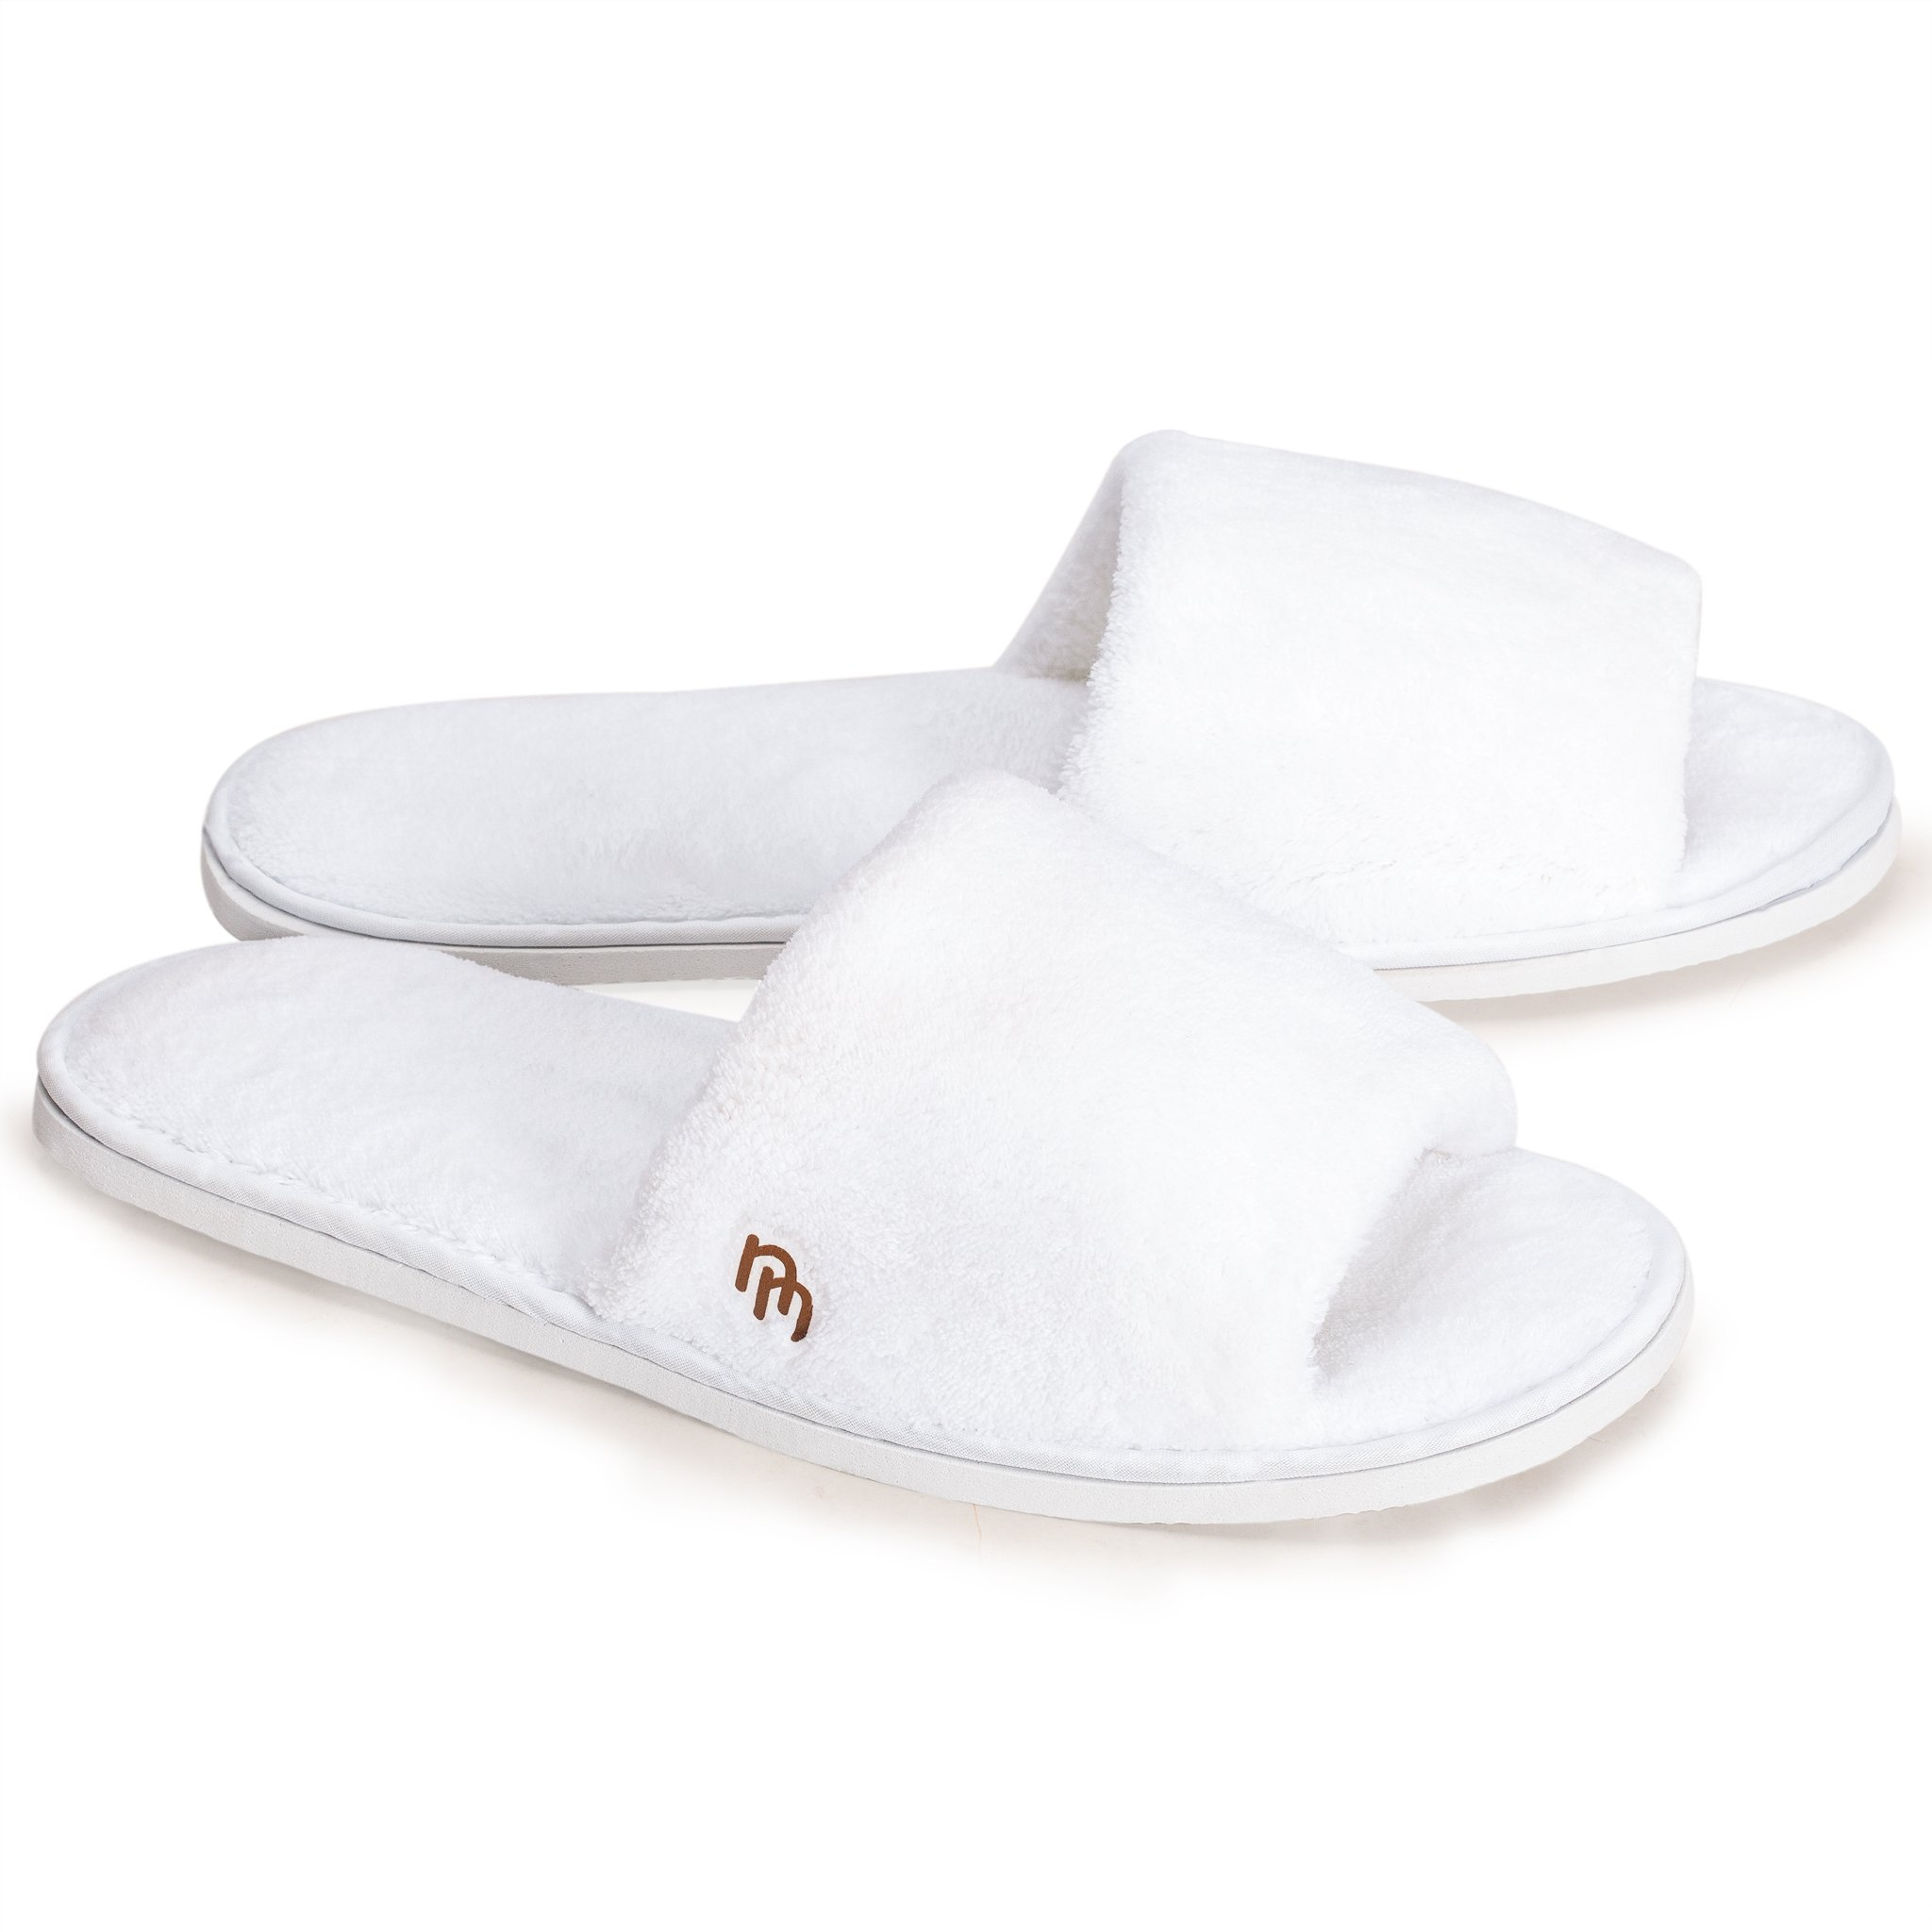 Nicely Neat 6pk White Open Toe Coral Fleece House and Travel Slipper (Large)